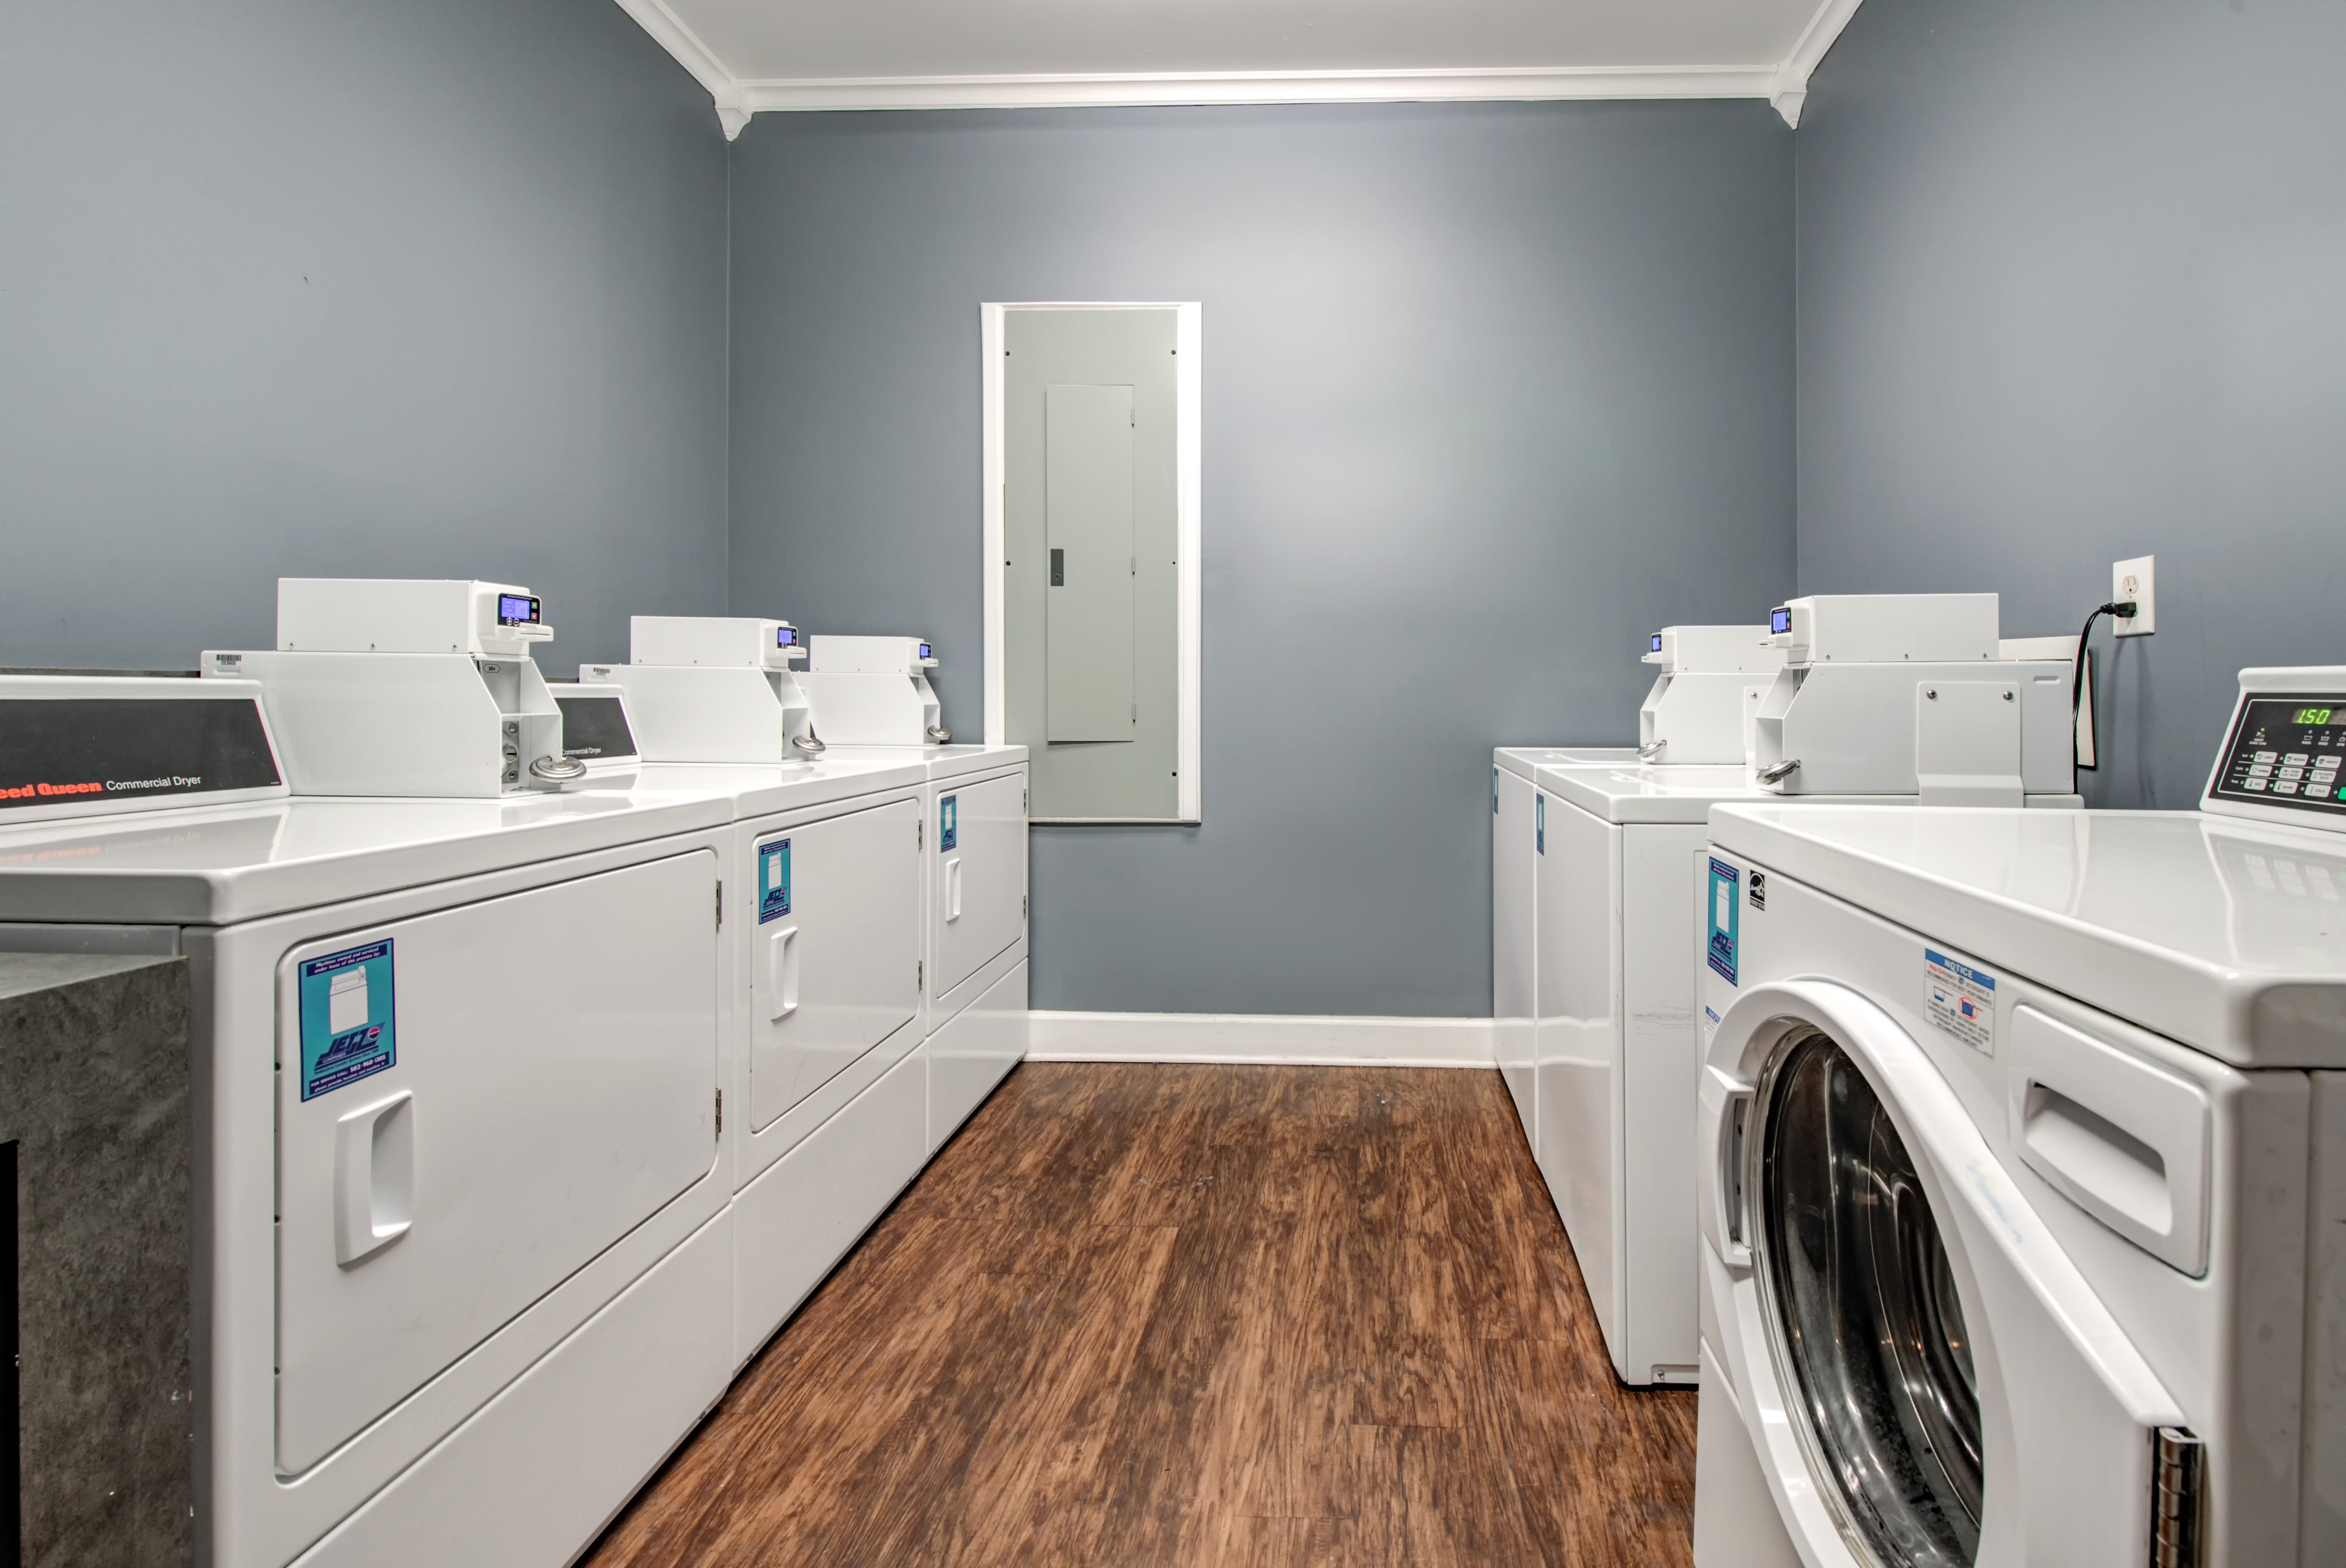 Laundry room with multiple machines at Renaissance St. Andrews in Louisville, Kentucky.